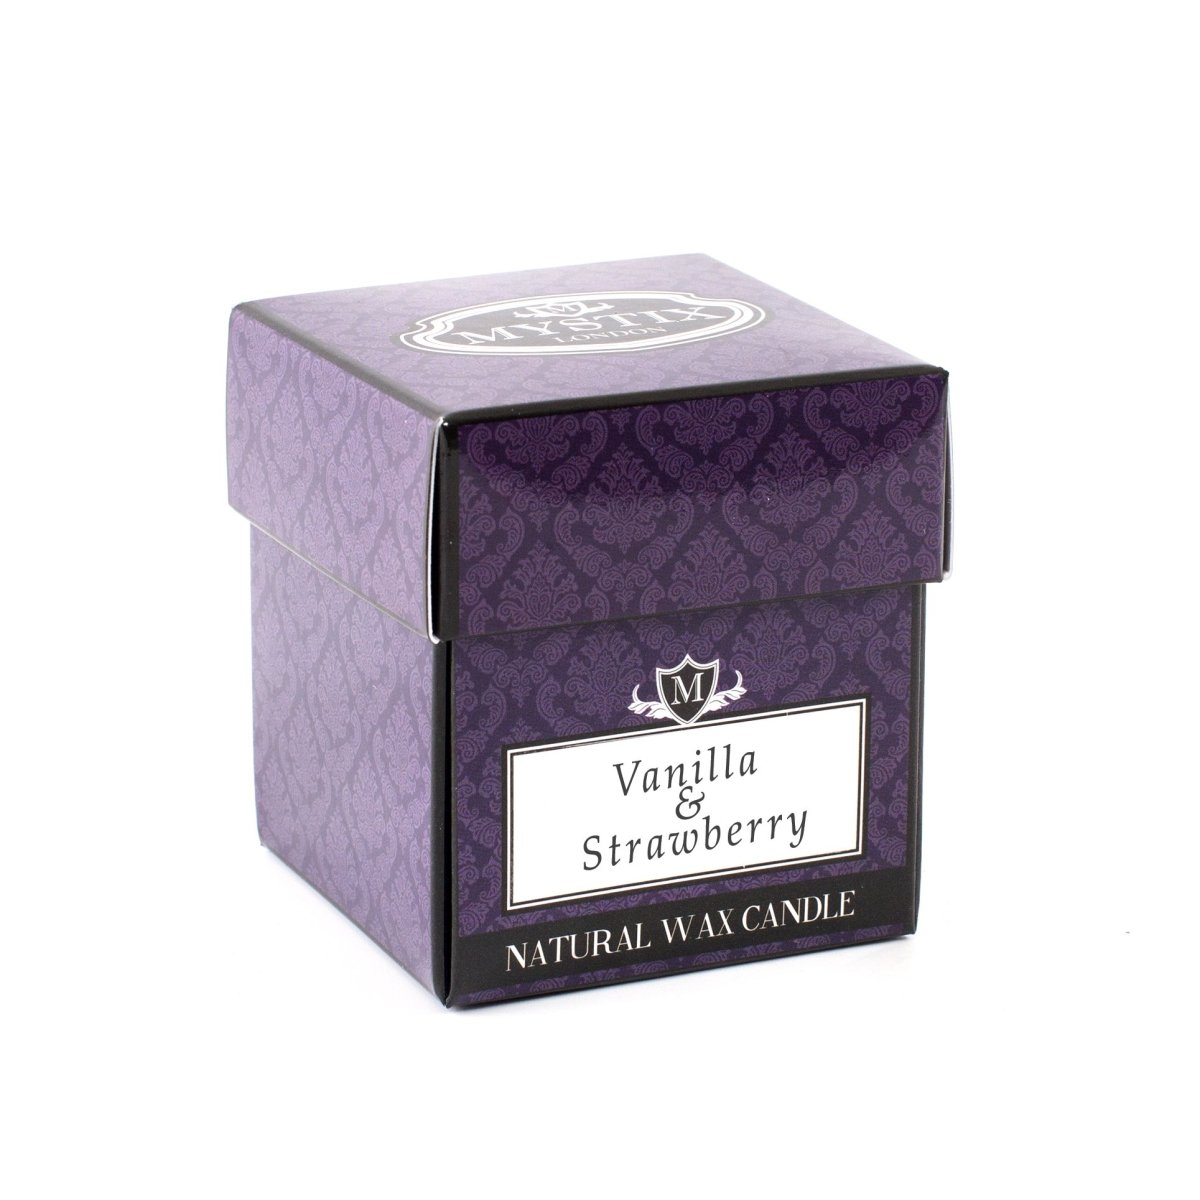 Vanilla & Strawberry Scented Candle - Mystic Moments UK